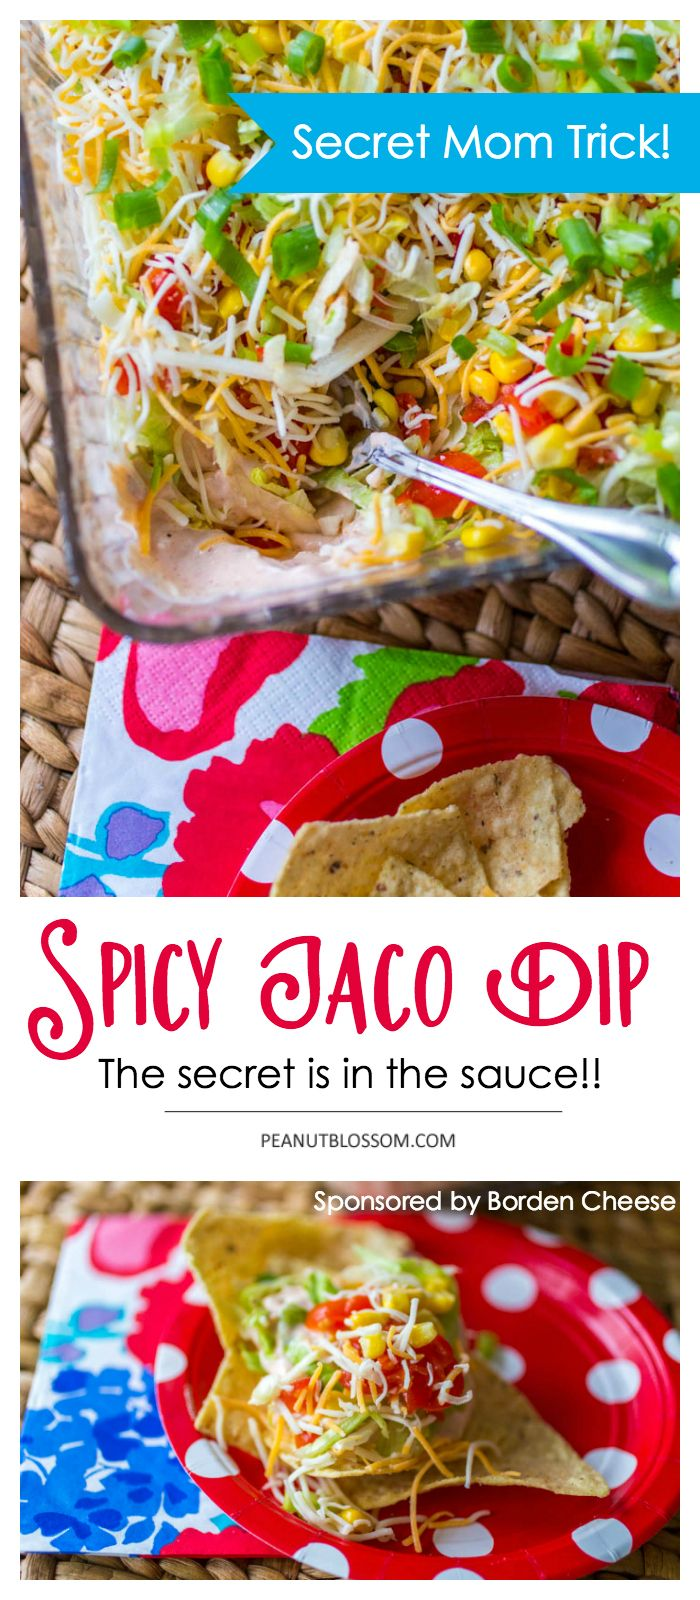 Mom's Kitchen Secrets for making the best ever spicy taco dip. This is the perfect party appetizer recipe, there are never any leftovers! Guests gobble it right up. Perfect for your next pot luck or grill out.